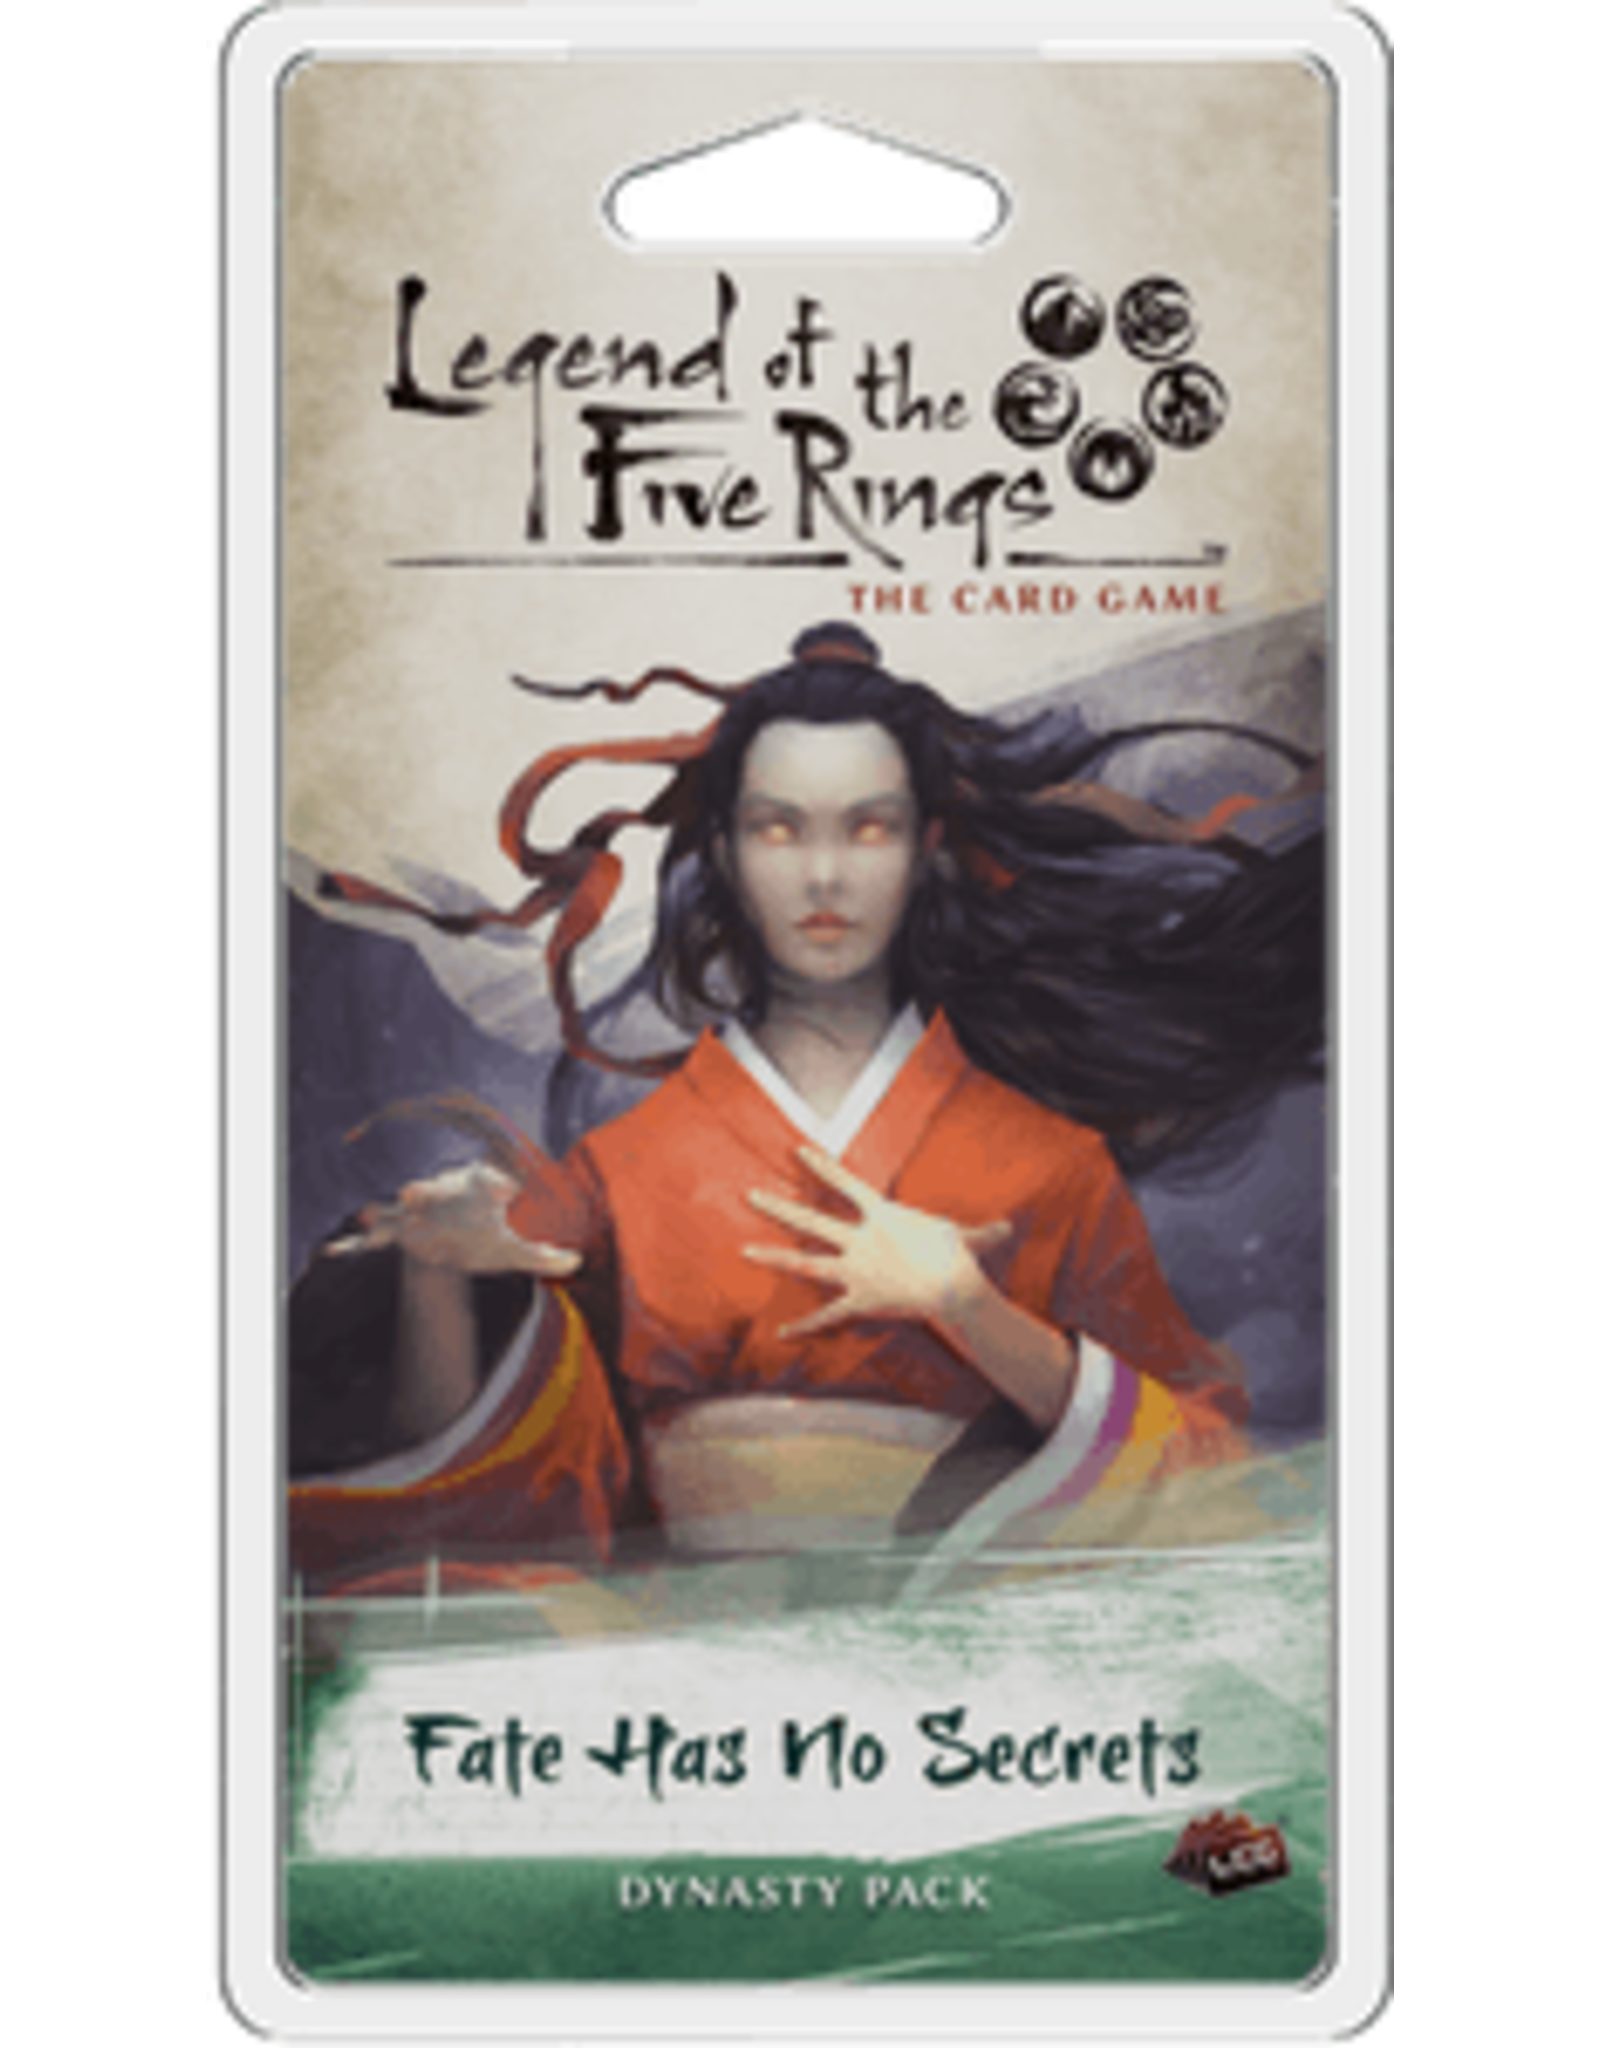 Legend of the Five Rings LCG Fate Has No Secrets Dynasty Pack